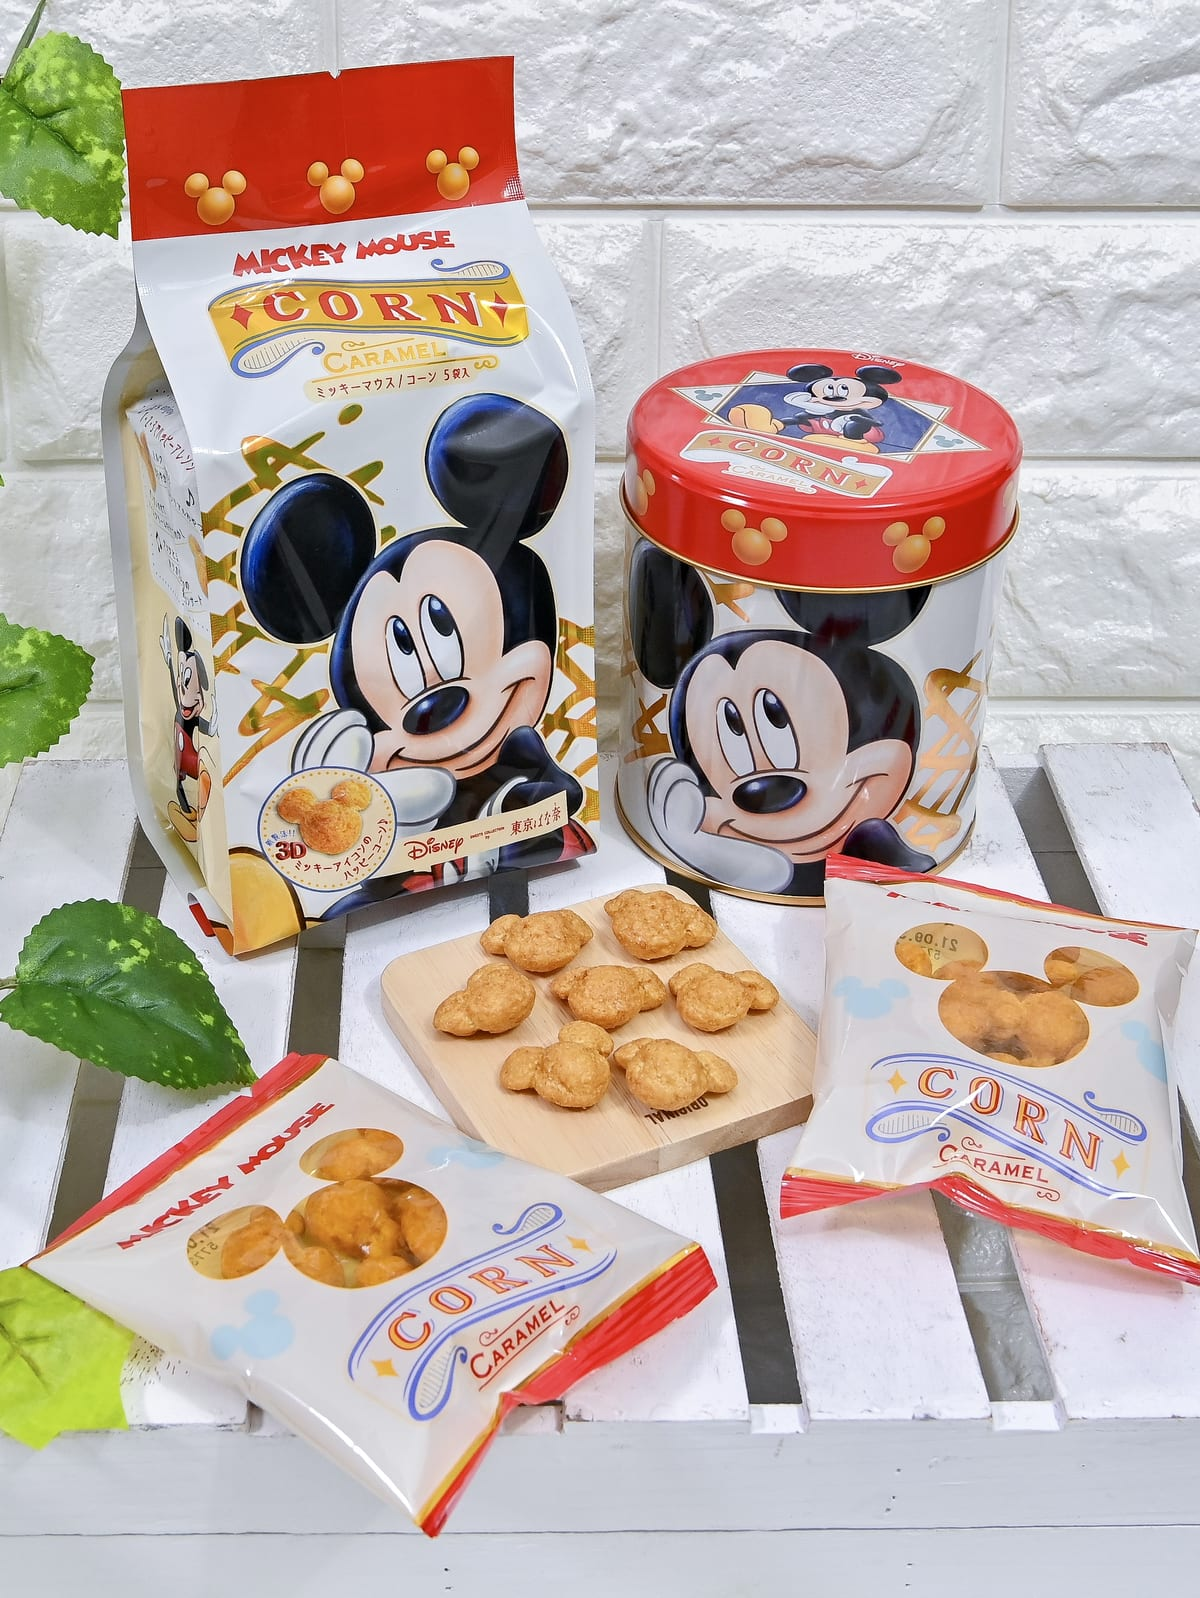 Disney SWEETS COLLECTION by 東京ばな奈『ミッキーマウス/コーン キャラメル味』